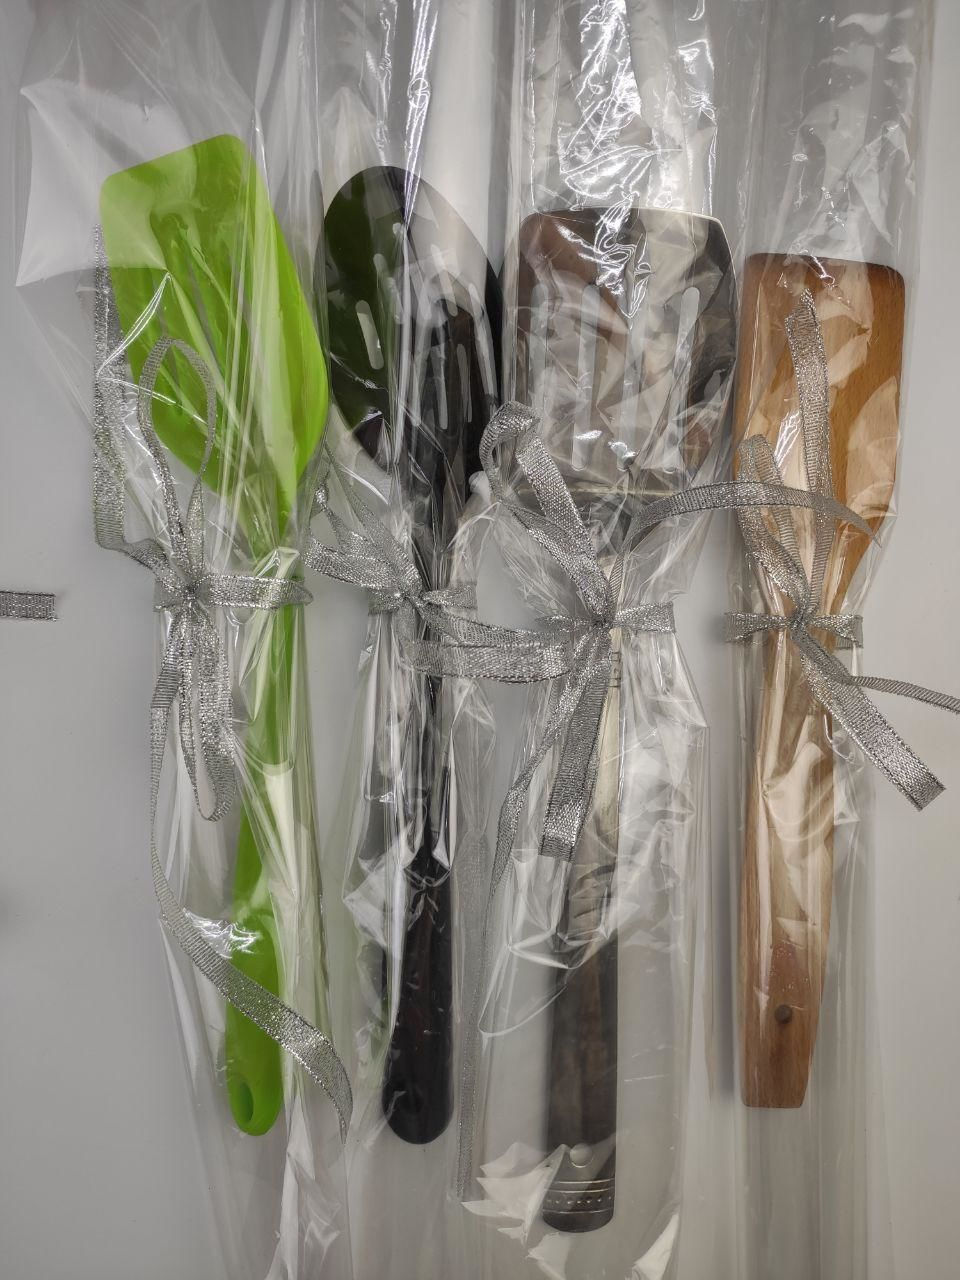 ladles in cellophane